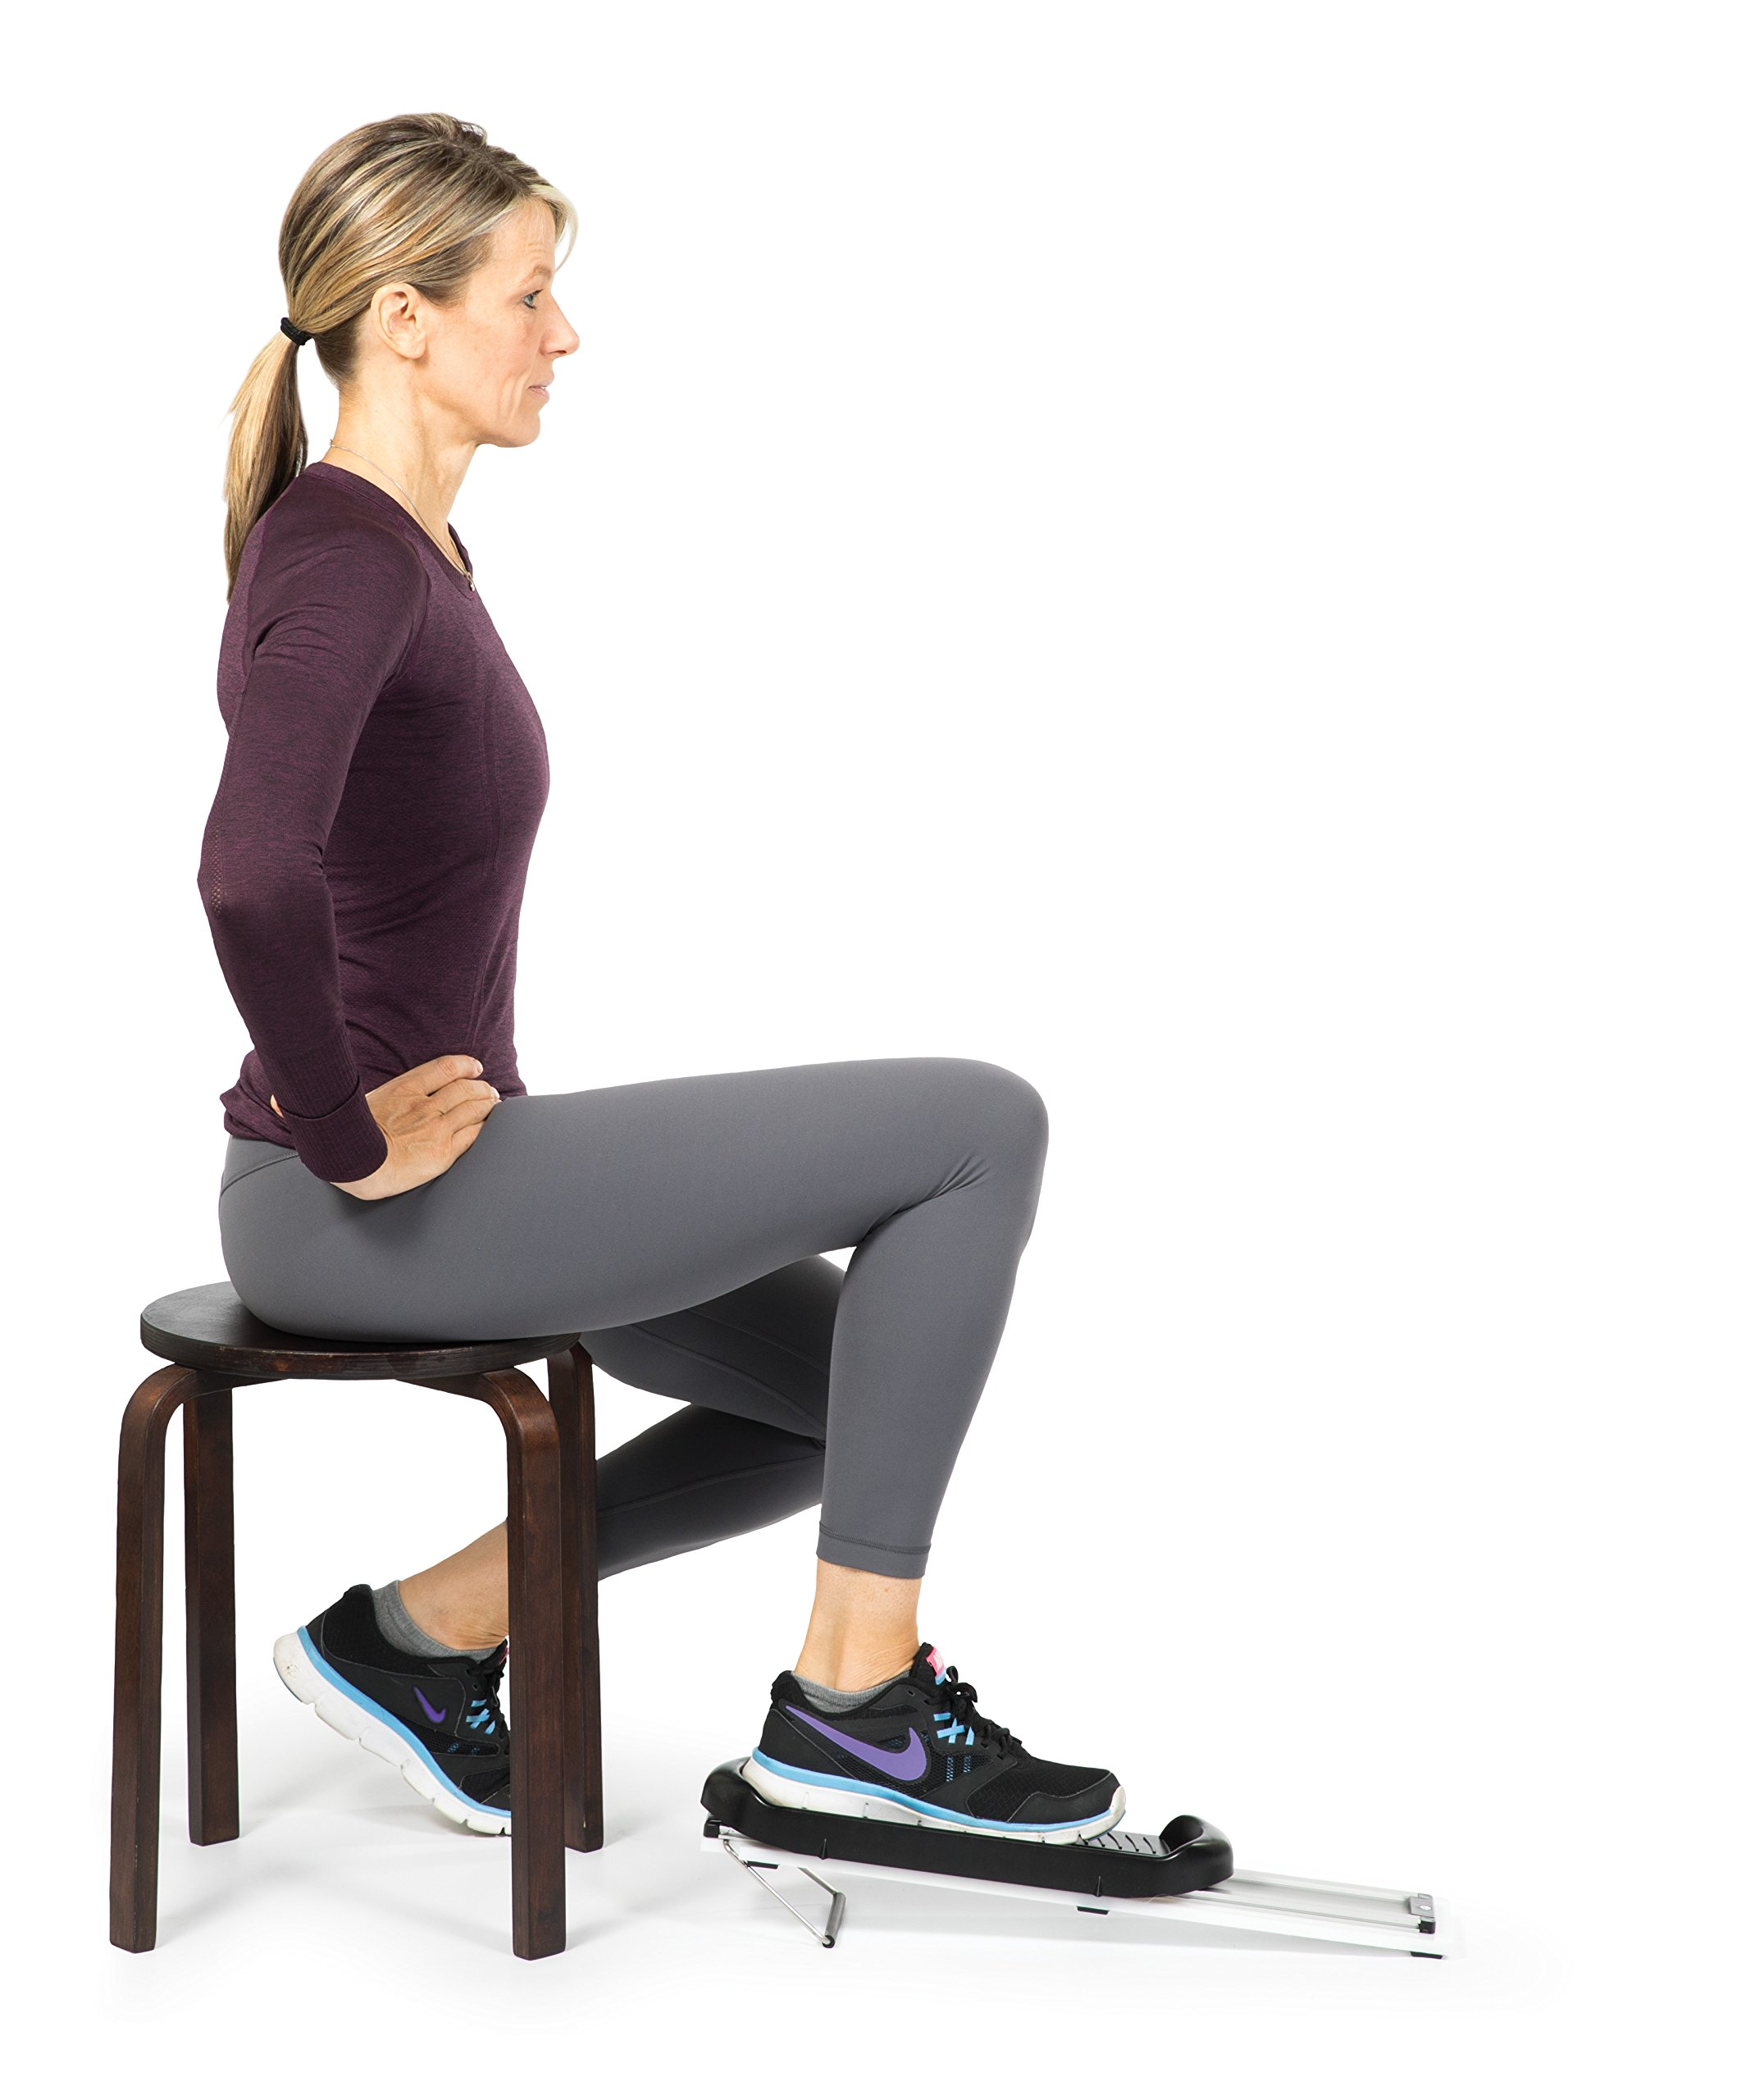 Knee Glide - An Exercise Tool for Therapy After Knee Replacement | Rehabilitation for ACL, PCL, Shoulder, Rotator Cuff Surgery, or Hip Replacement by OPTP (Image #3)